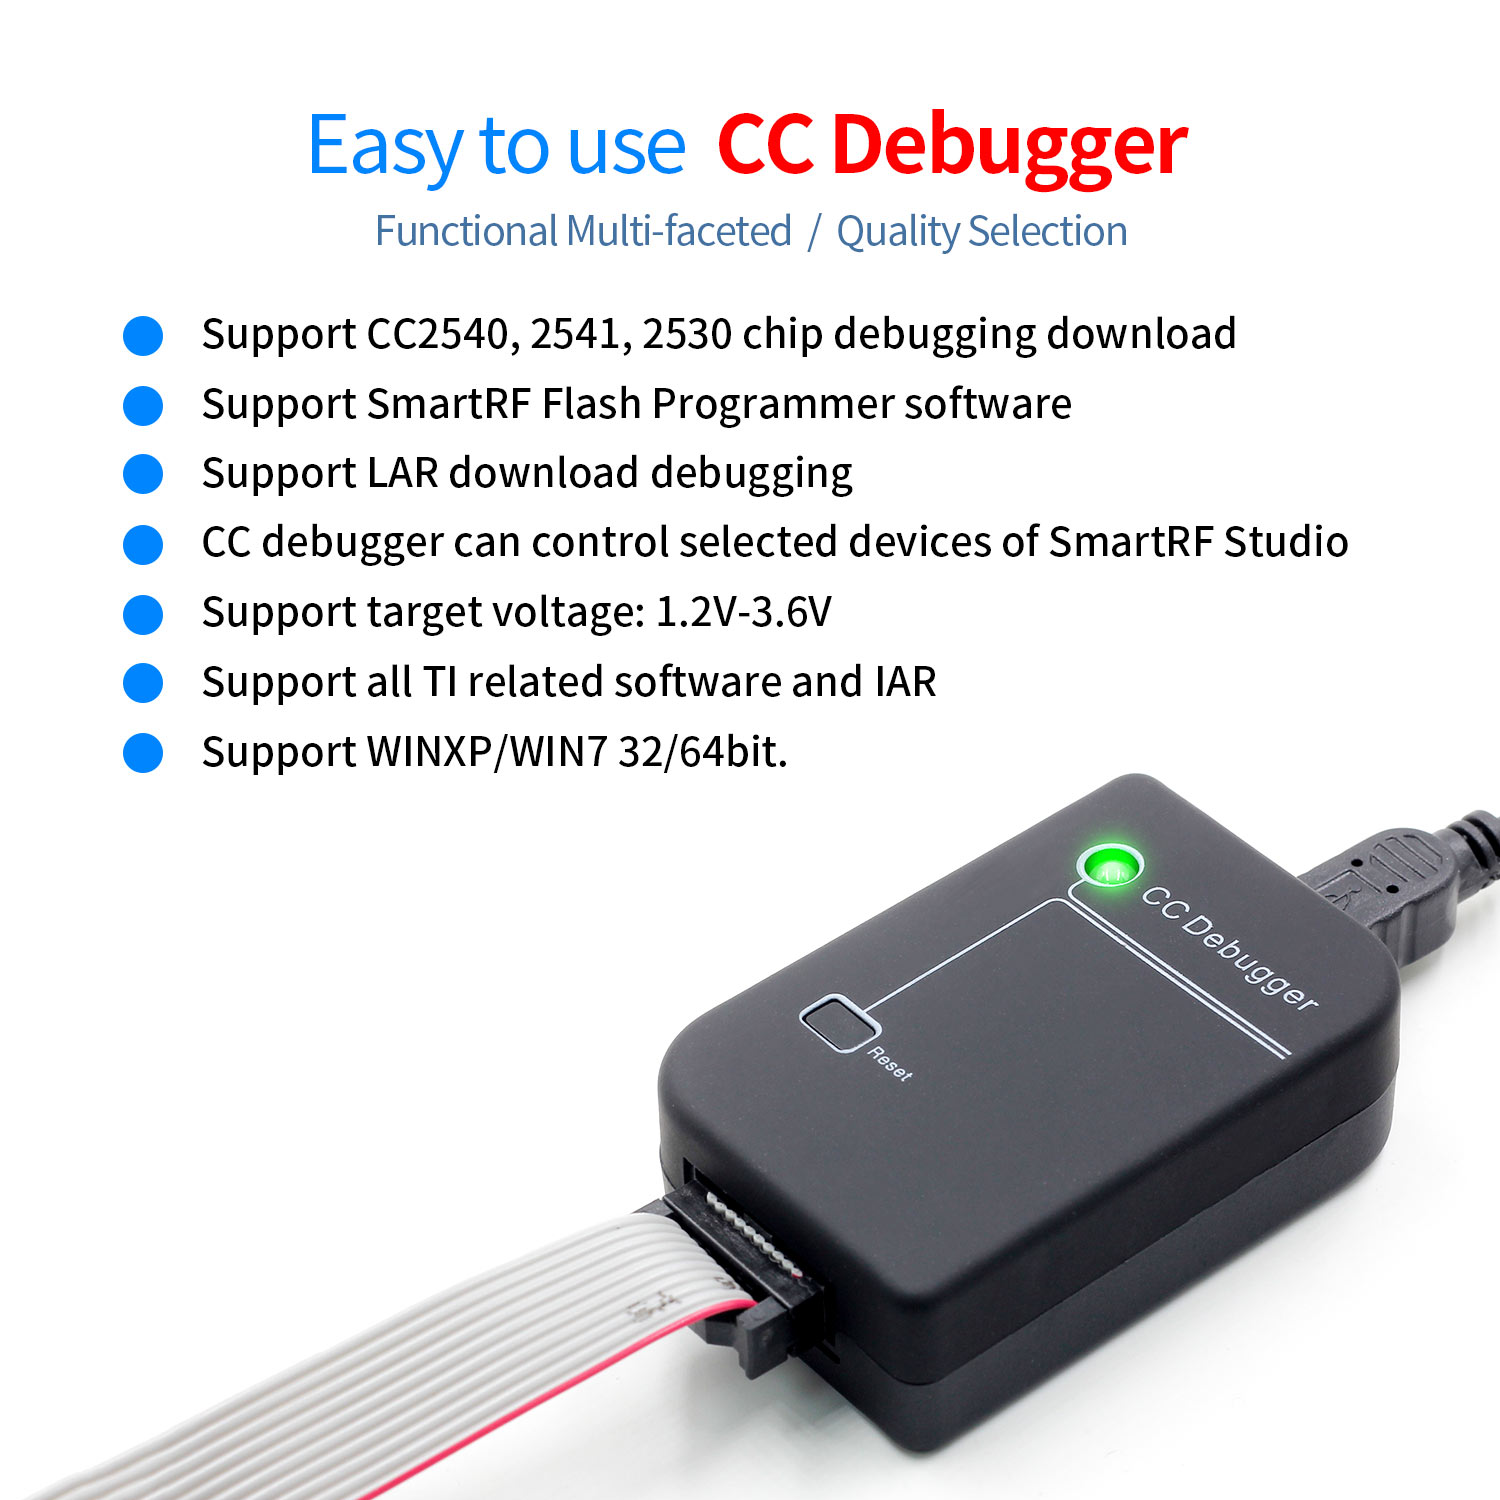 CC Debugger ZIGBEE Emulator Support Online Upgrade Original Shell Original Quality 2540 2541 2530 Protocol Analysis